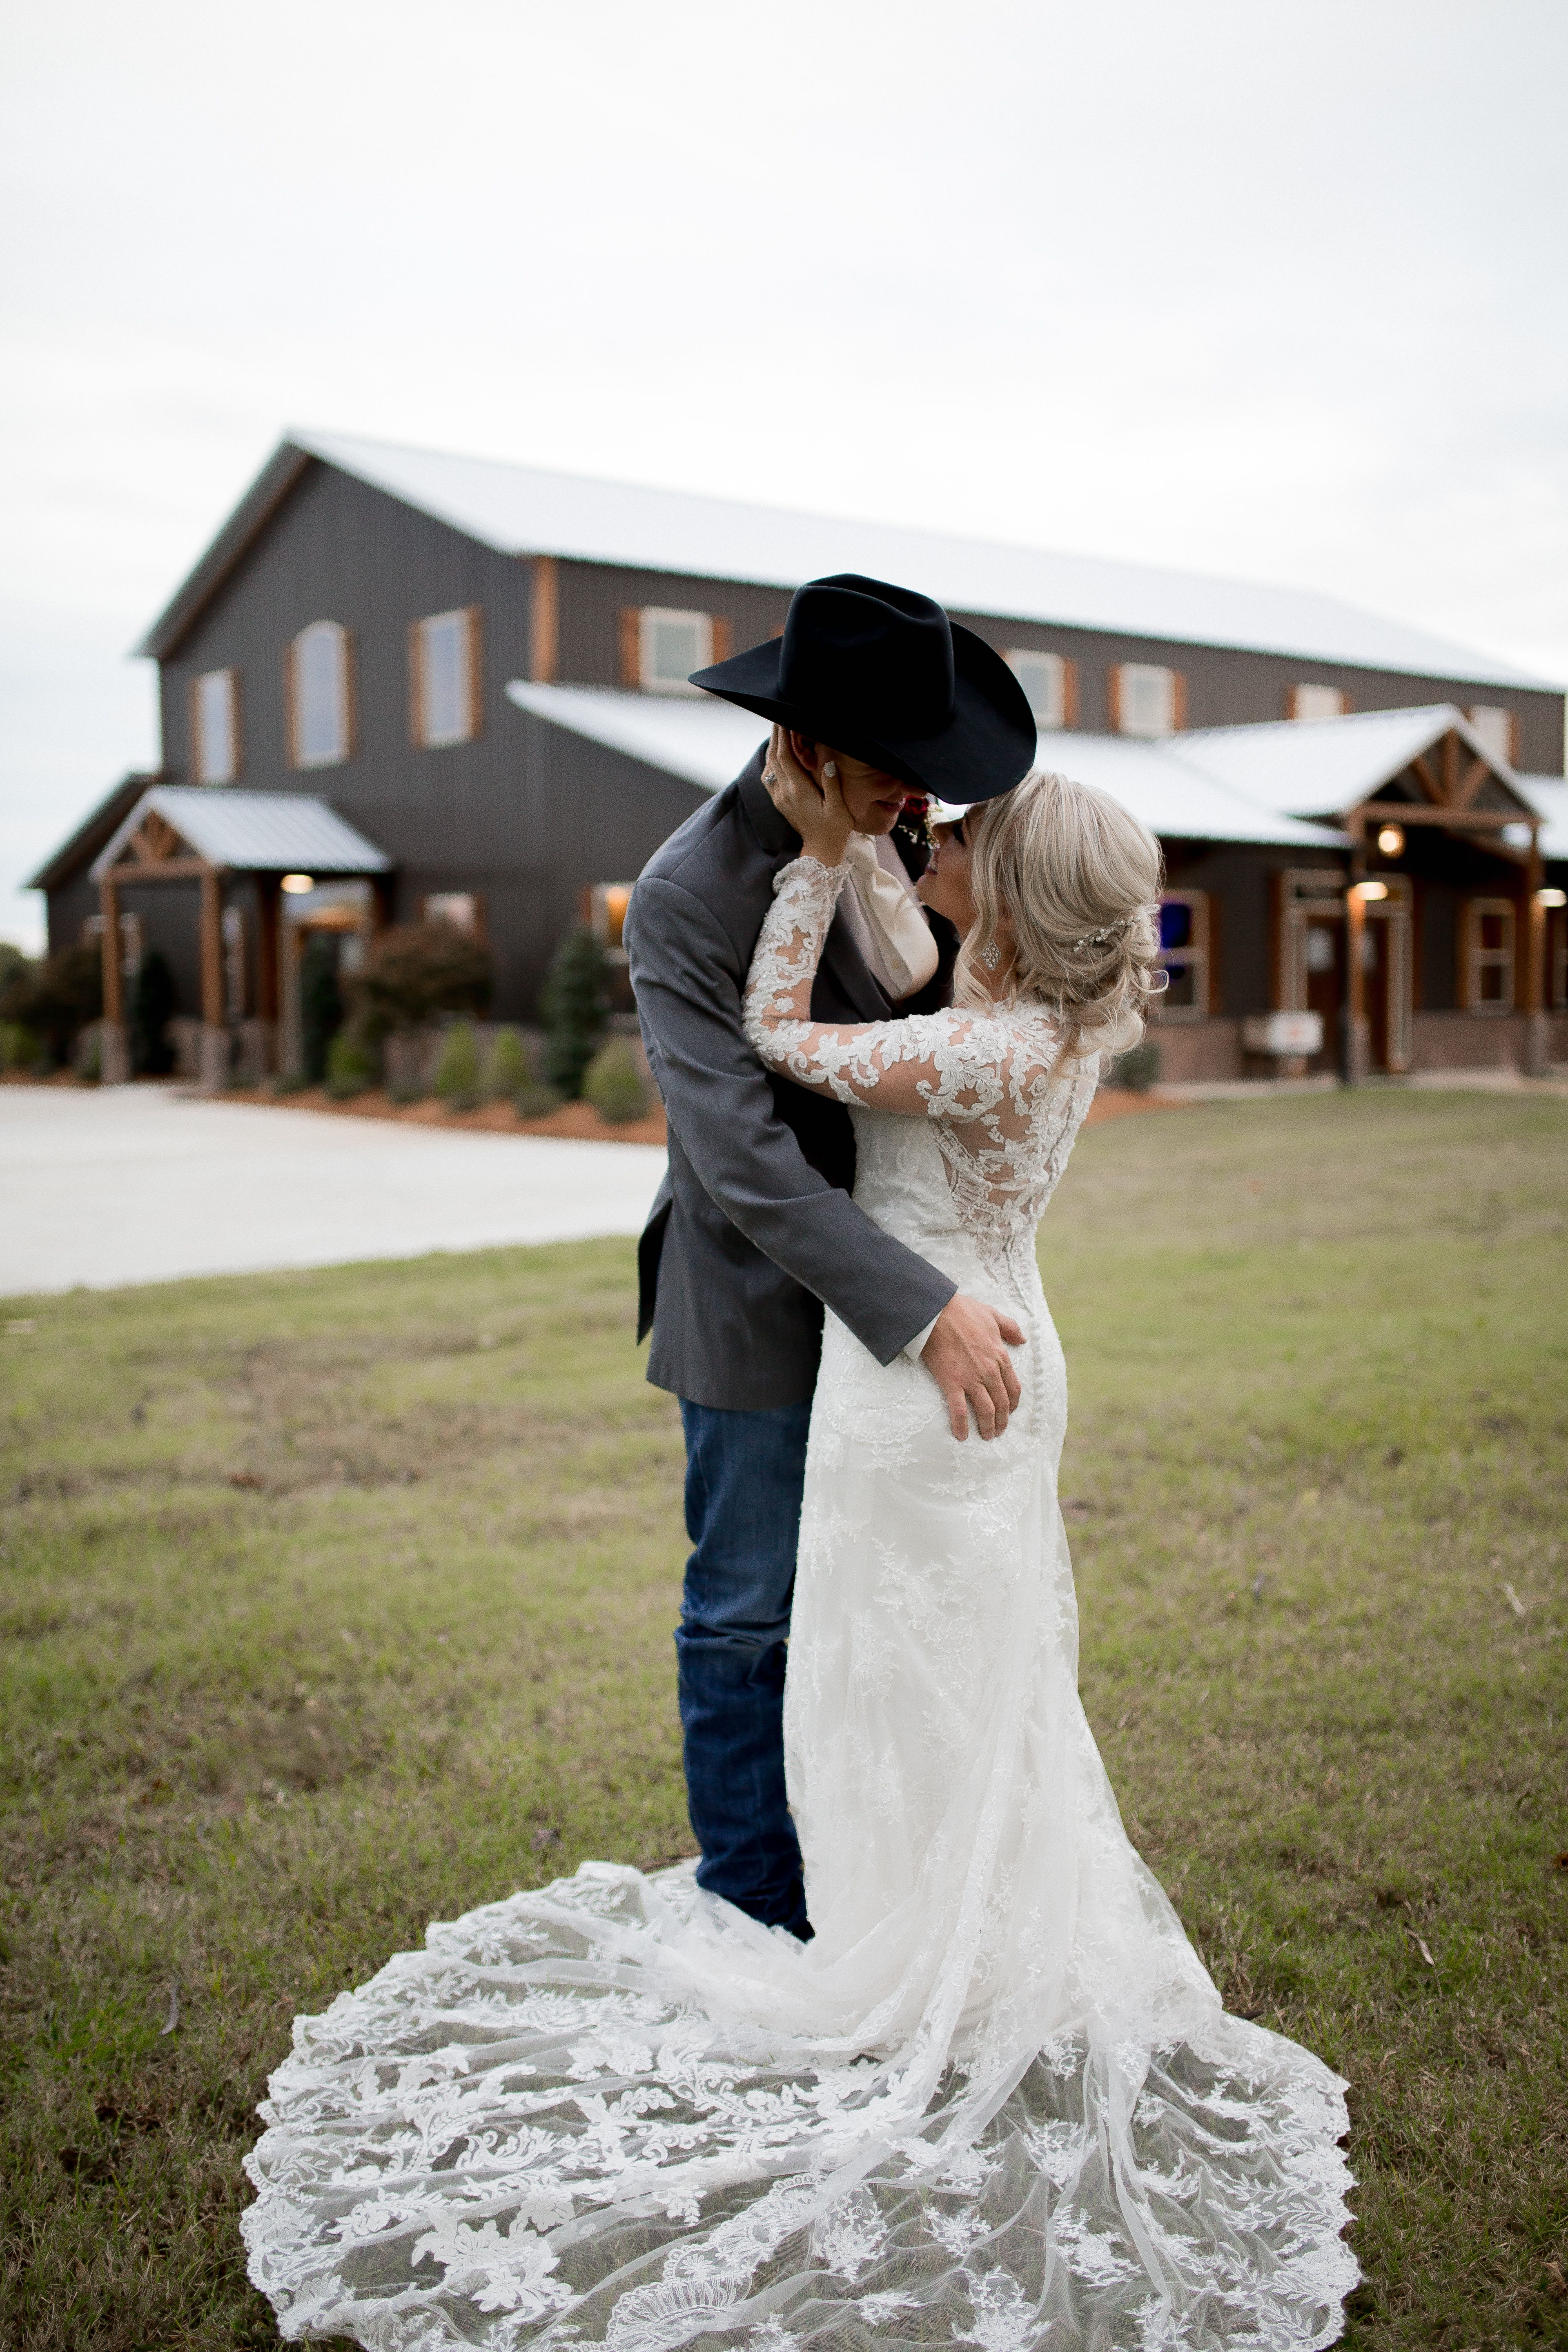 Western Wedding Photos Cowboy Wedding Goals Cowboy Wedding Country Wedding Pictures Country Wedding Photos